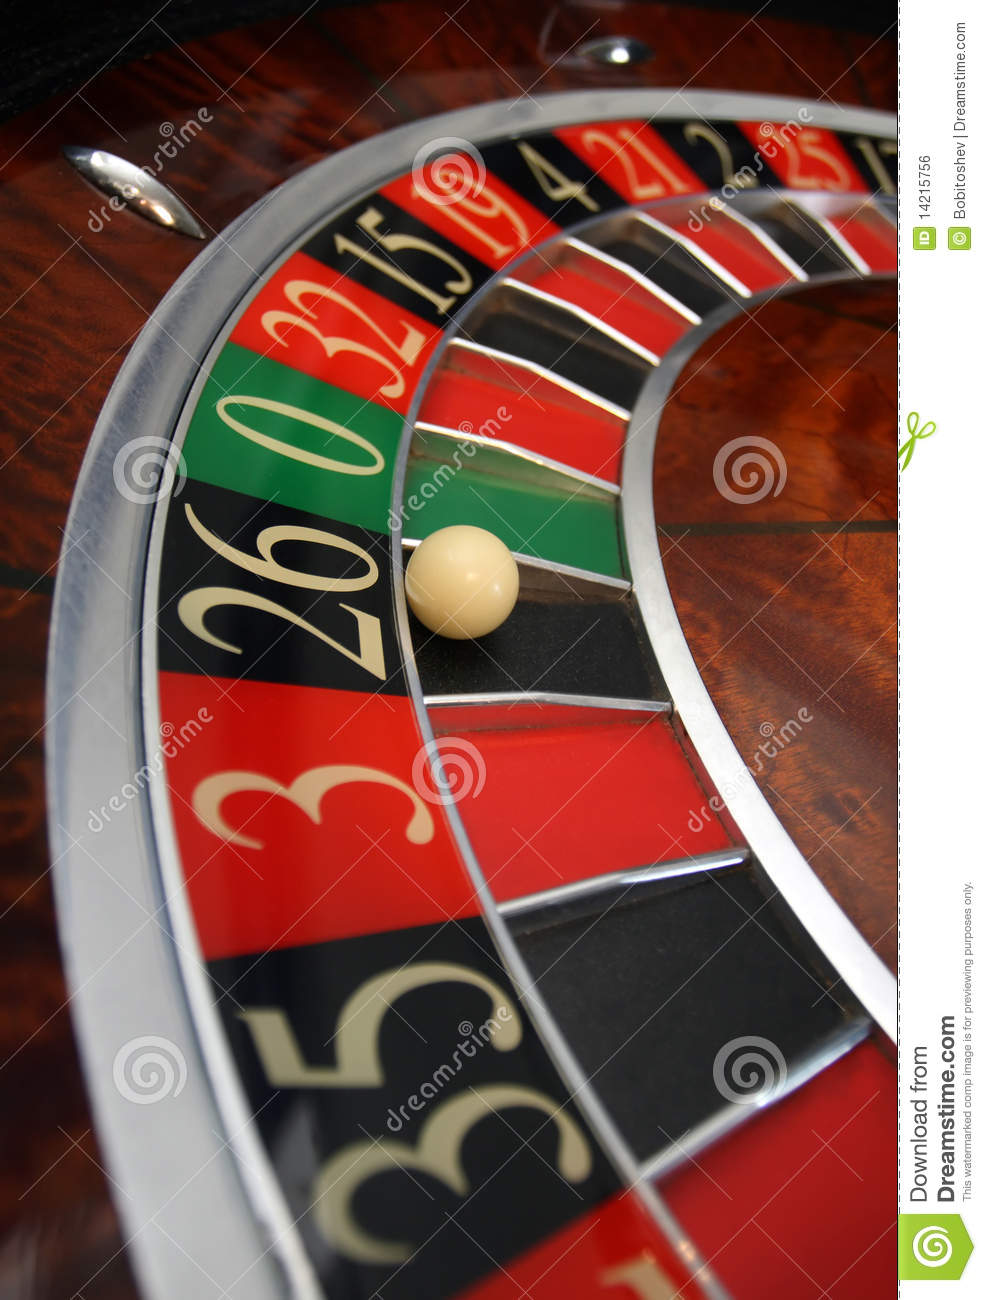 Casino online sites